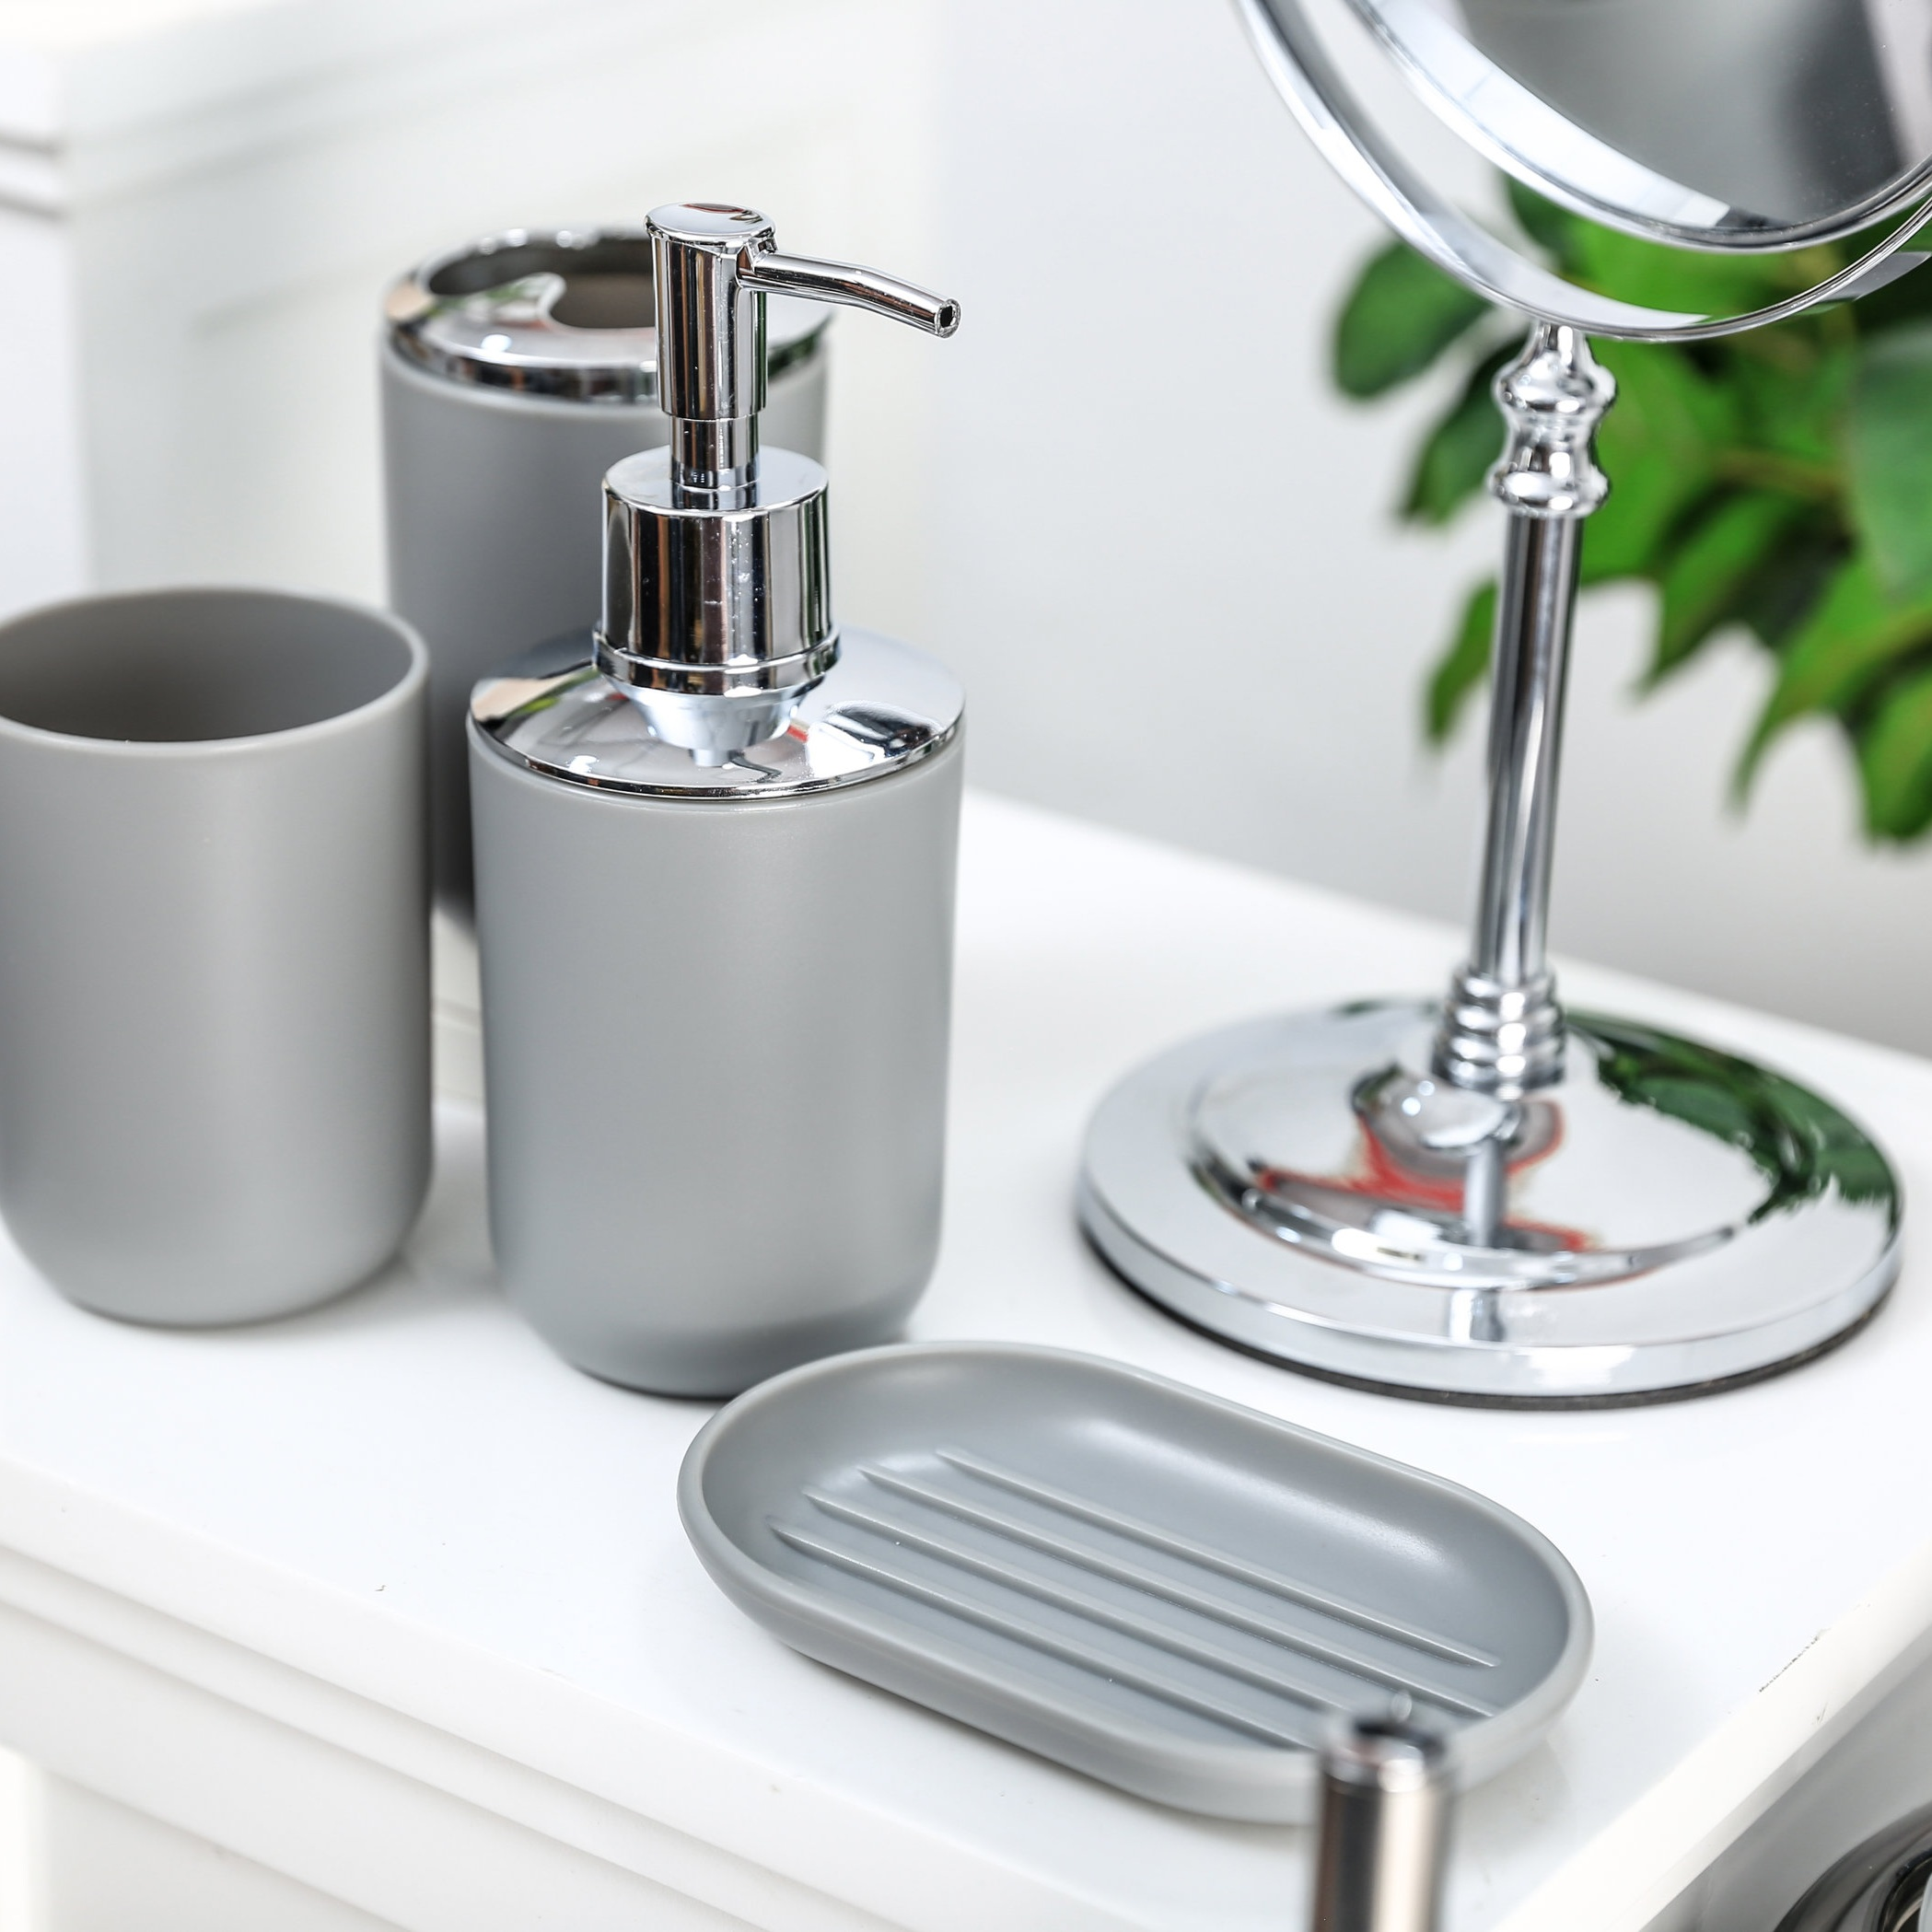 Bathroom Accessories - Browse our range of bathroom accessories